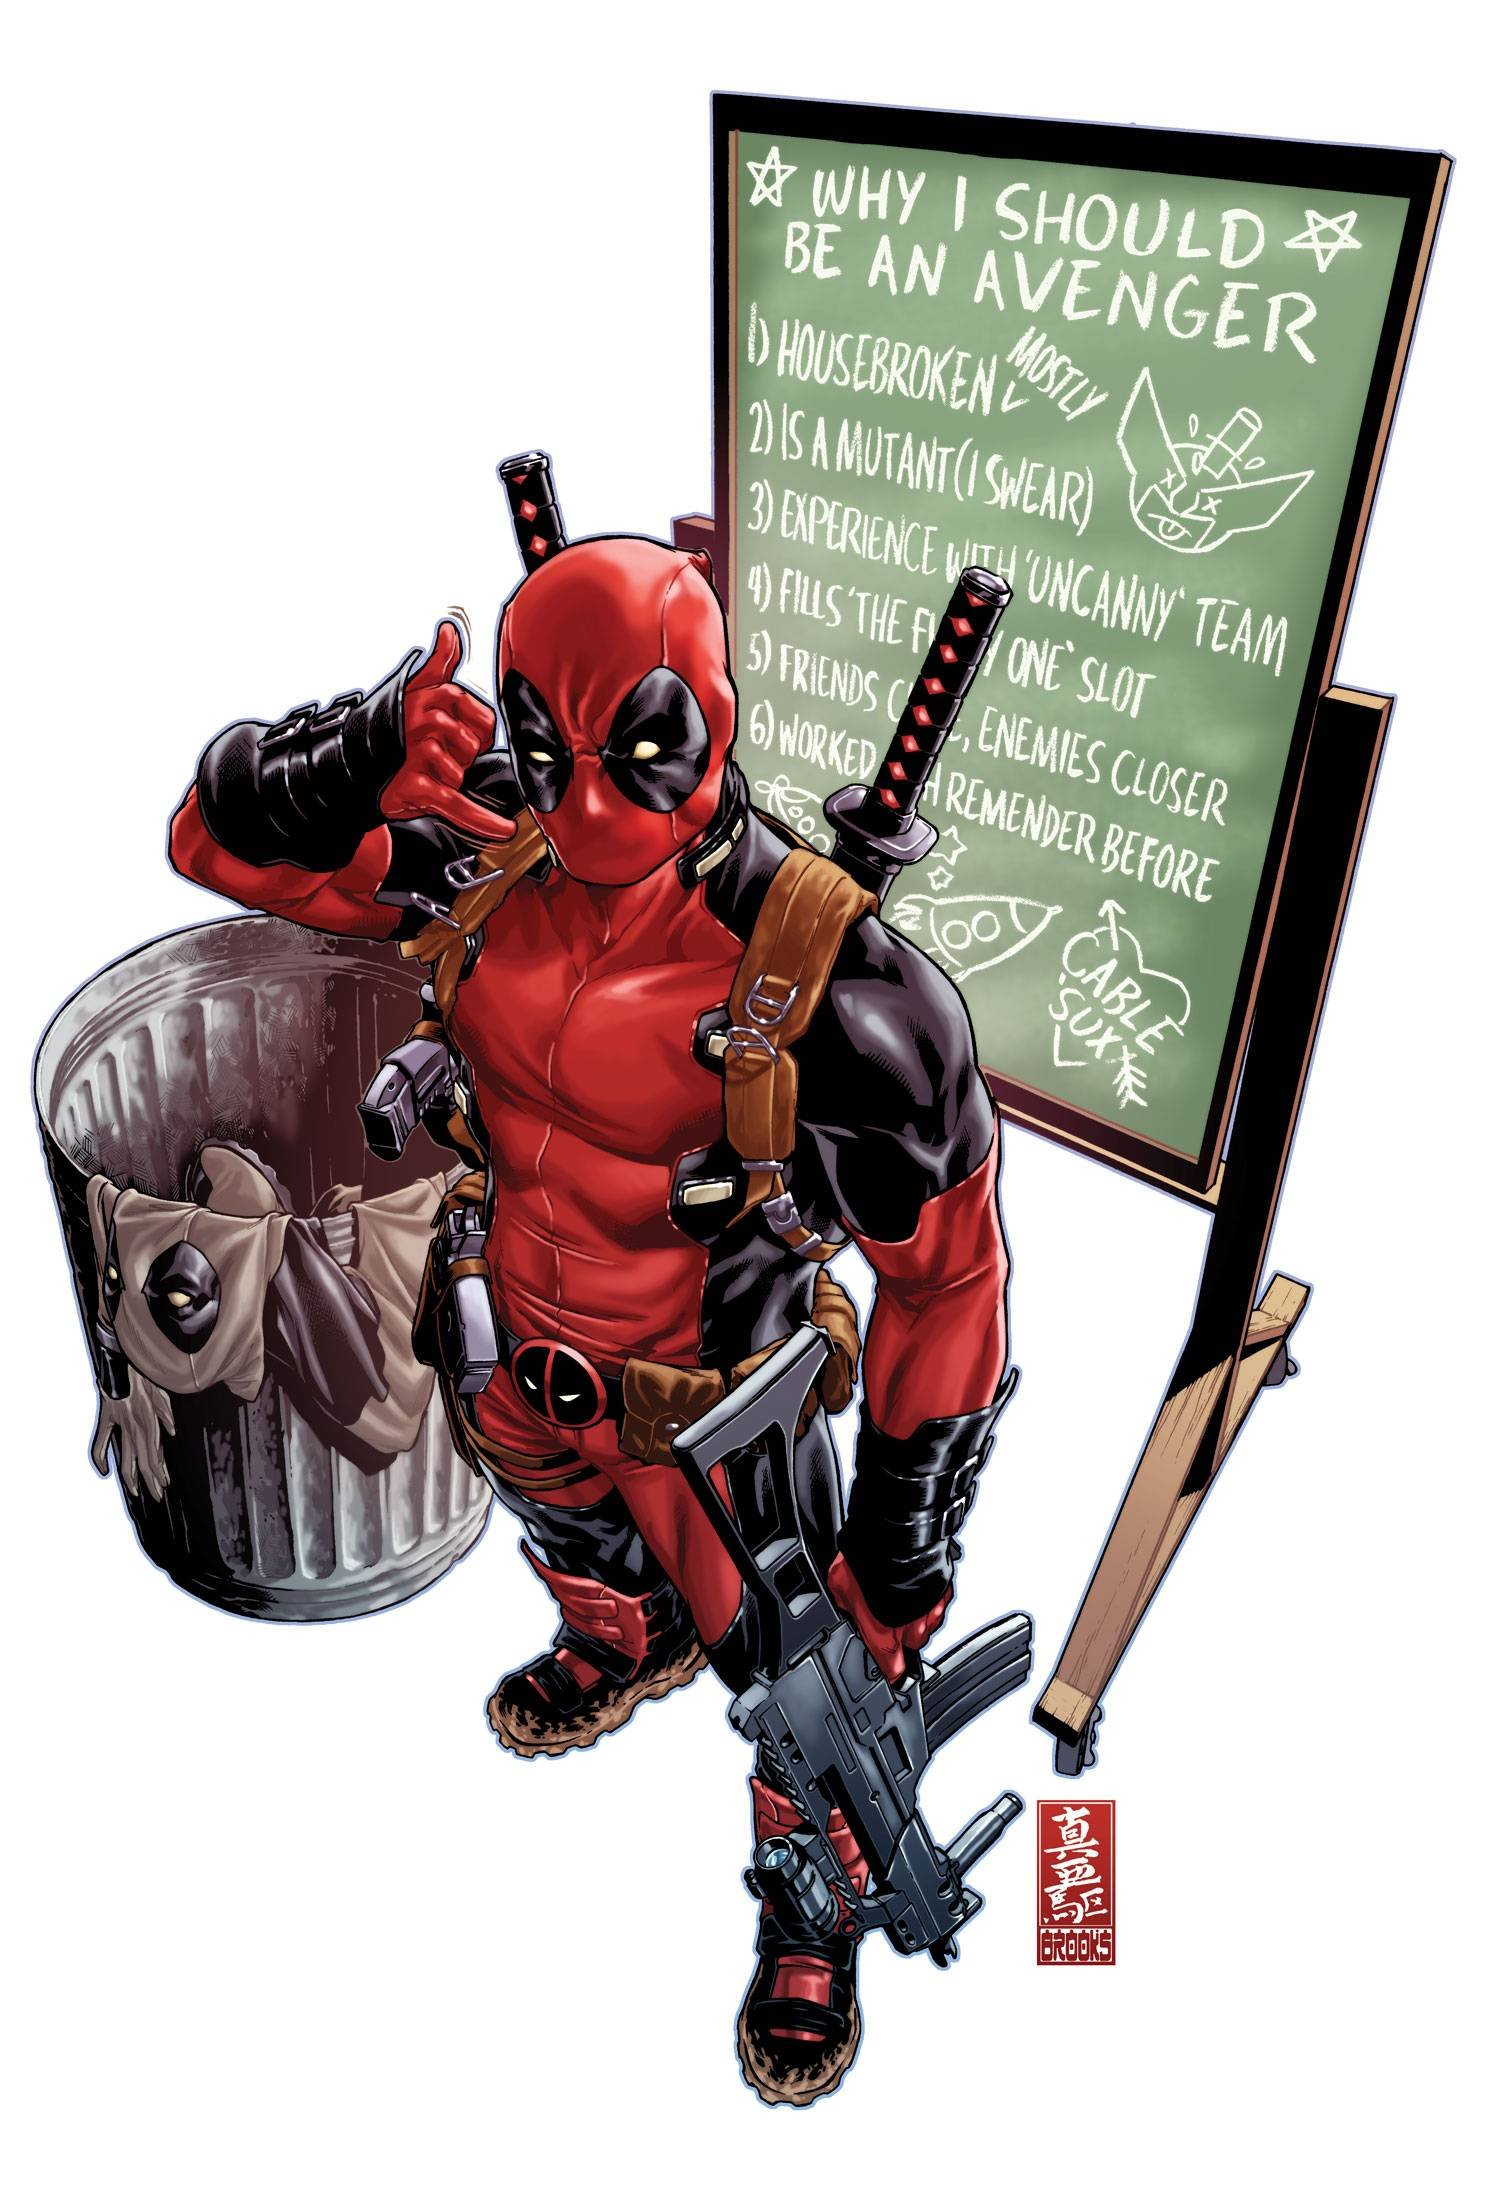 Uncanny Avengers #1 Deadpool Call Me Maybe Variant Cover Now pdf